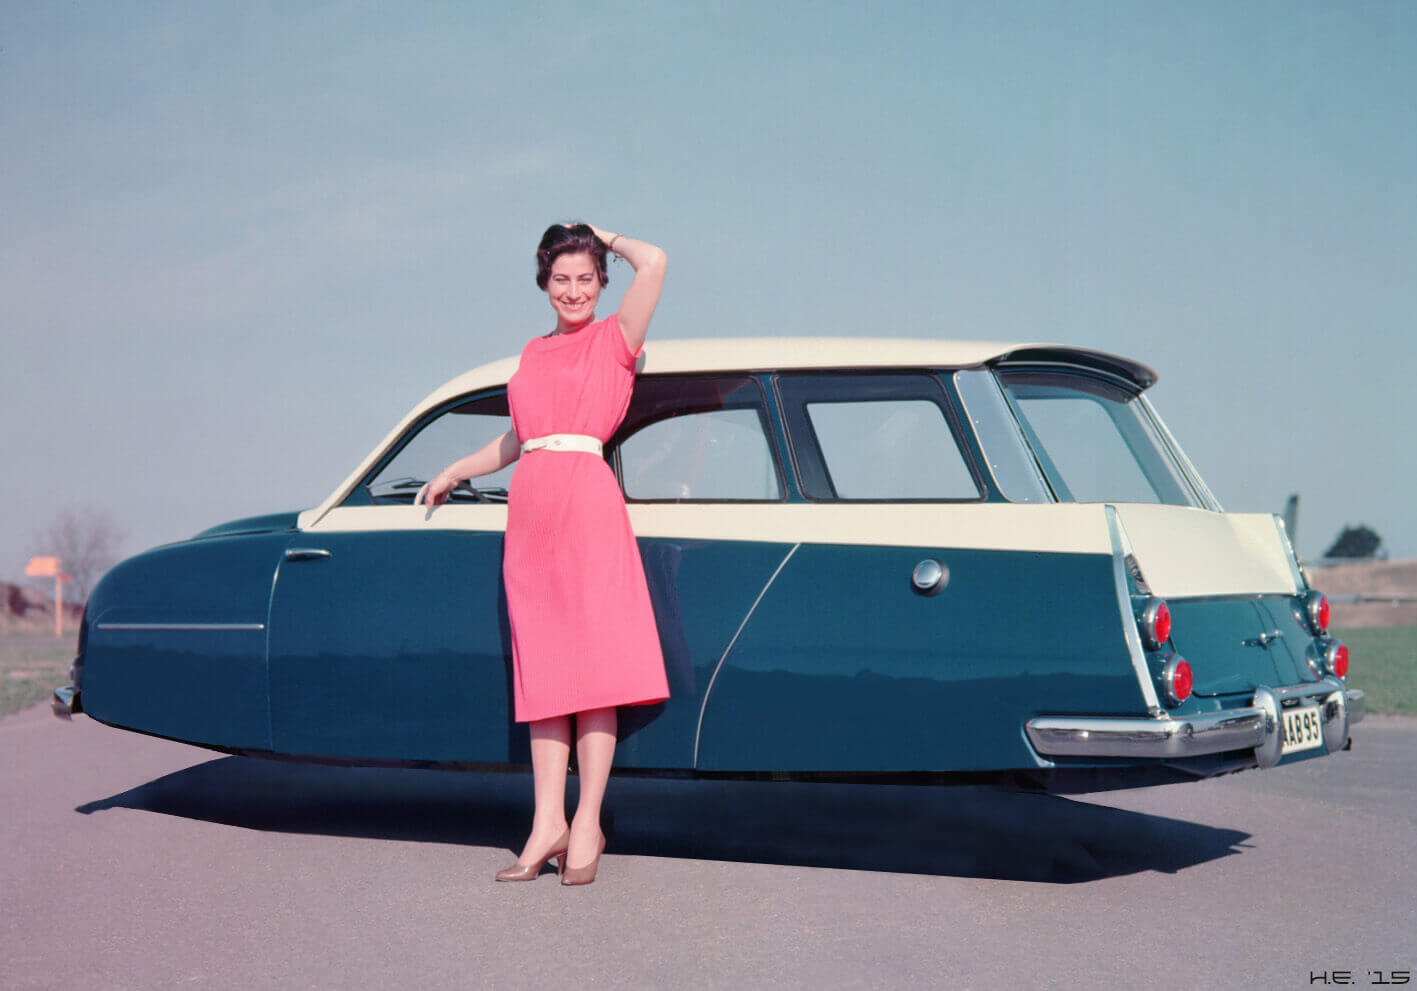 An anti gravity vehicle image from the 1950's. Was anti gravity already available at that time?